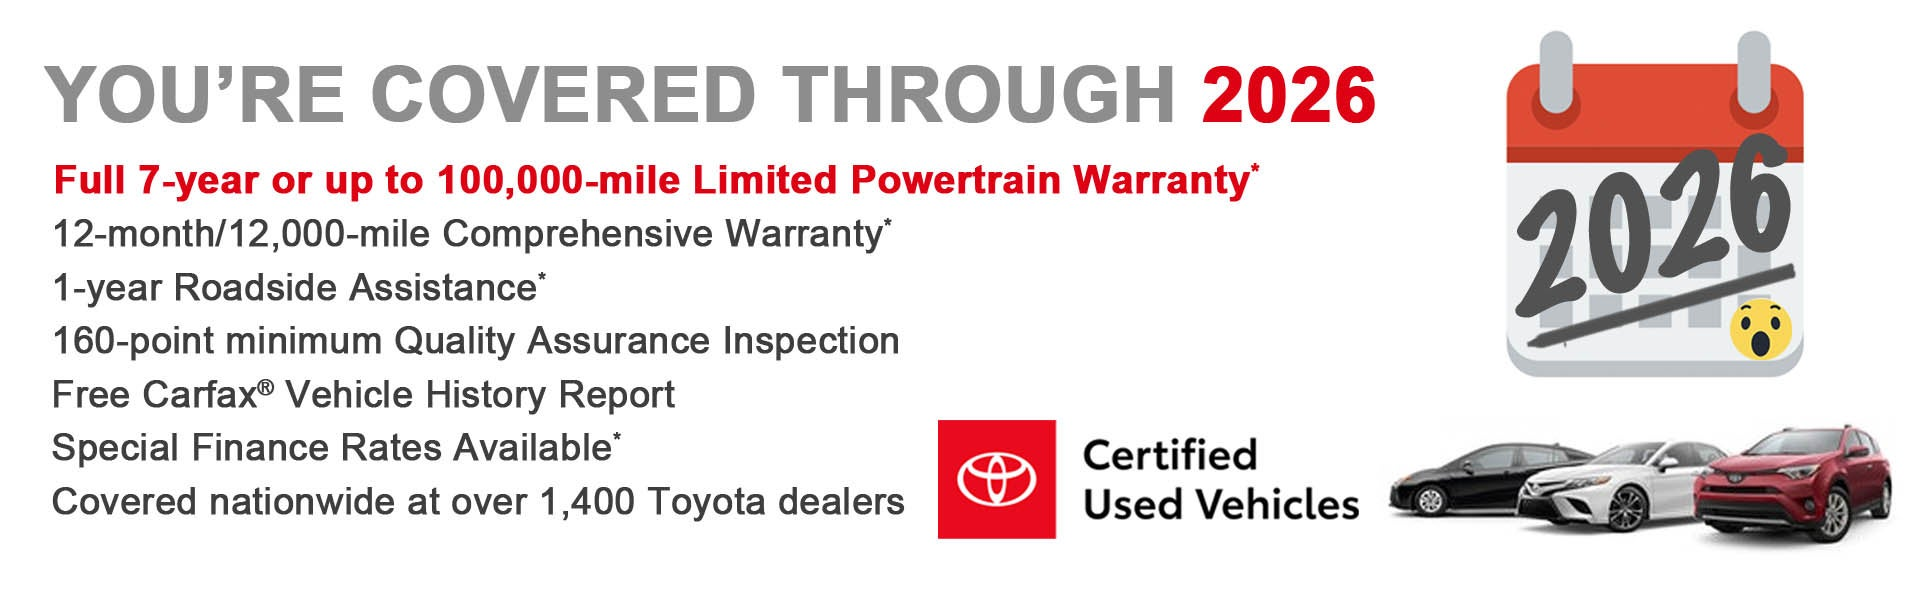 Used Cars Dartmouth >> Toyota Certified Used Car Warranty And Benefits Toyota